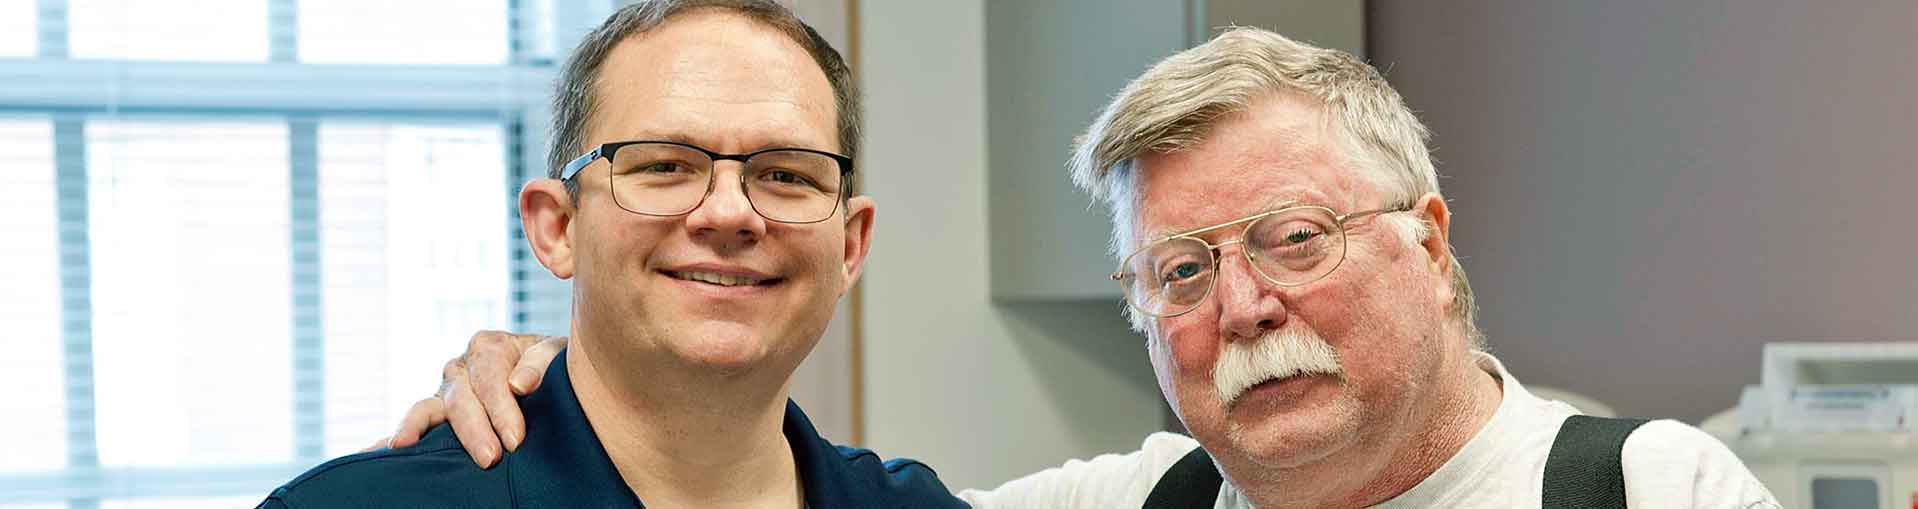 A lung transplant at UVA saved this man from a life with COPD.